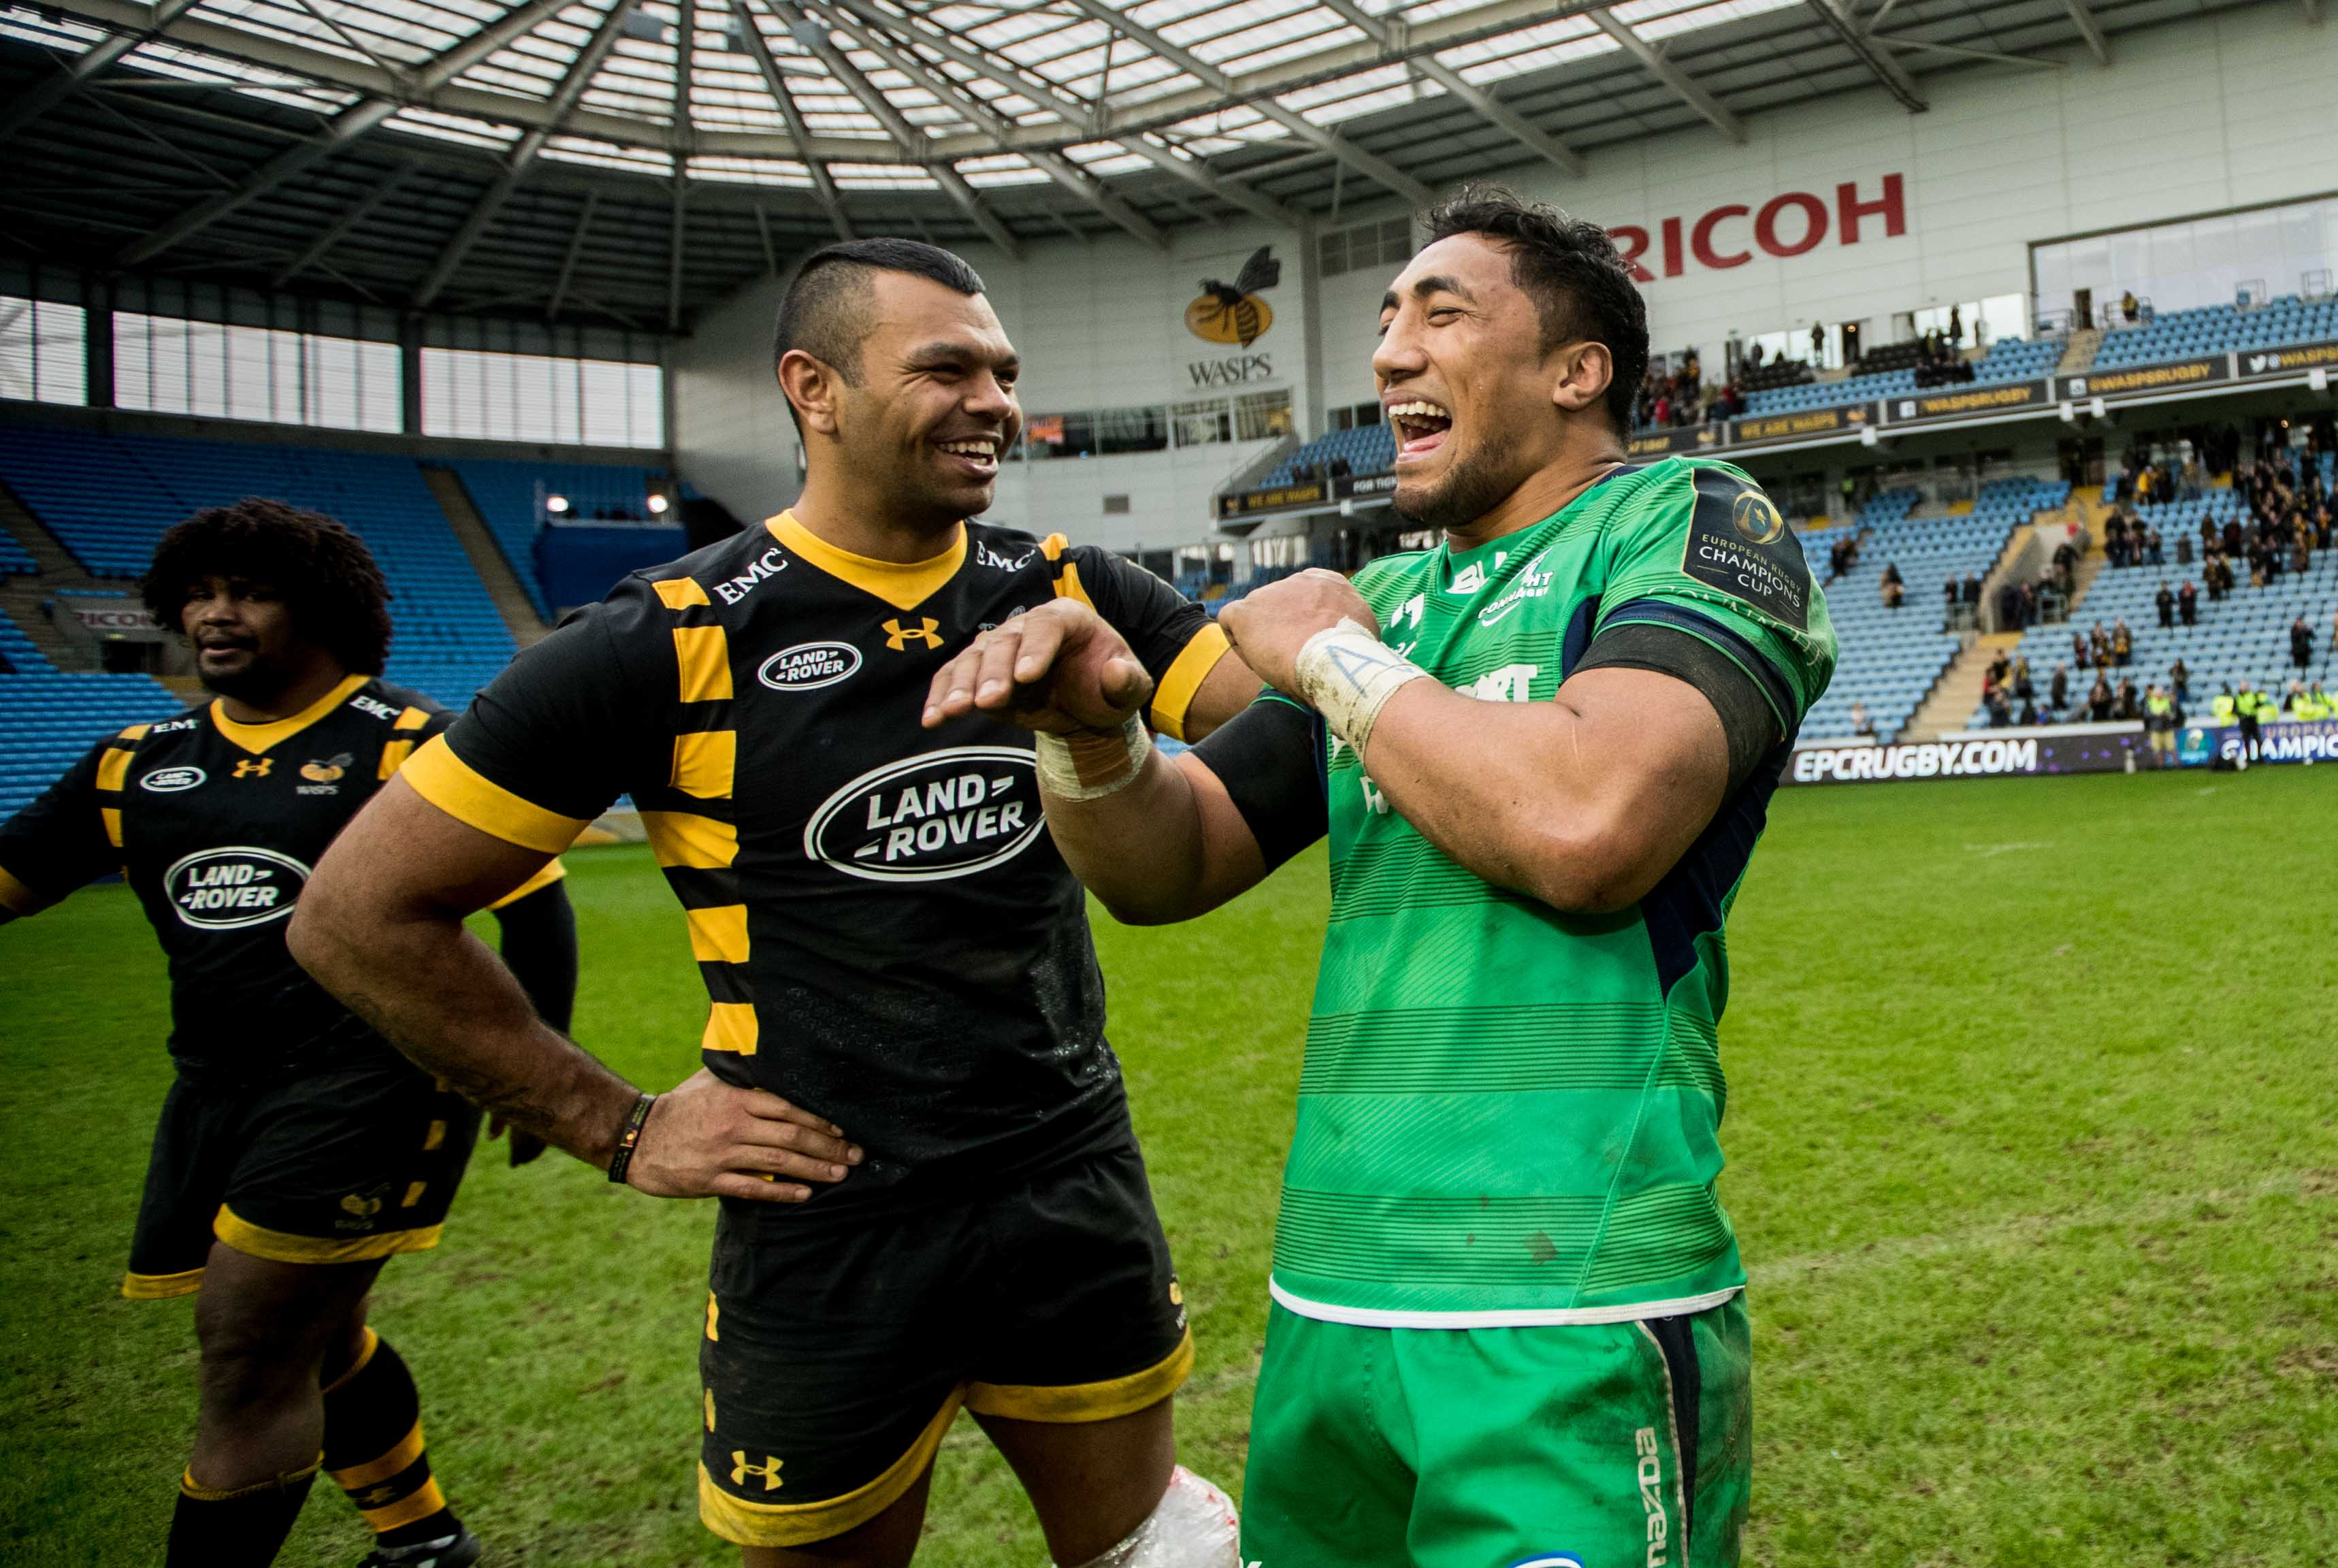 European Rugby Champions Cup Round 3, Ricoh Arena, Coventry, England 11/12/2016 Wasps vs Connacht  Wasps' Kurtley Beale and Bundee Aki of Connacht after the game Mandatory Credit ©INPHO/James Crombie